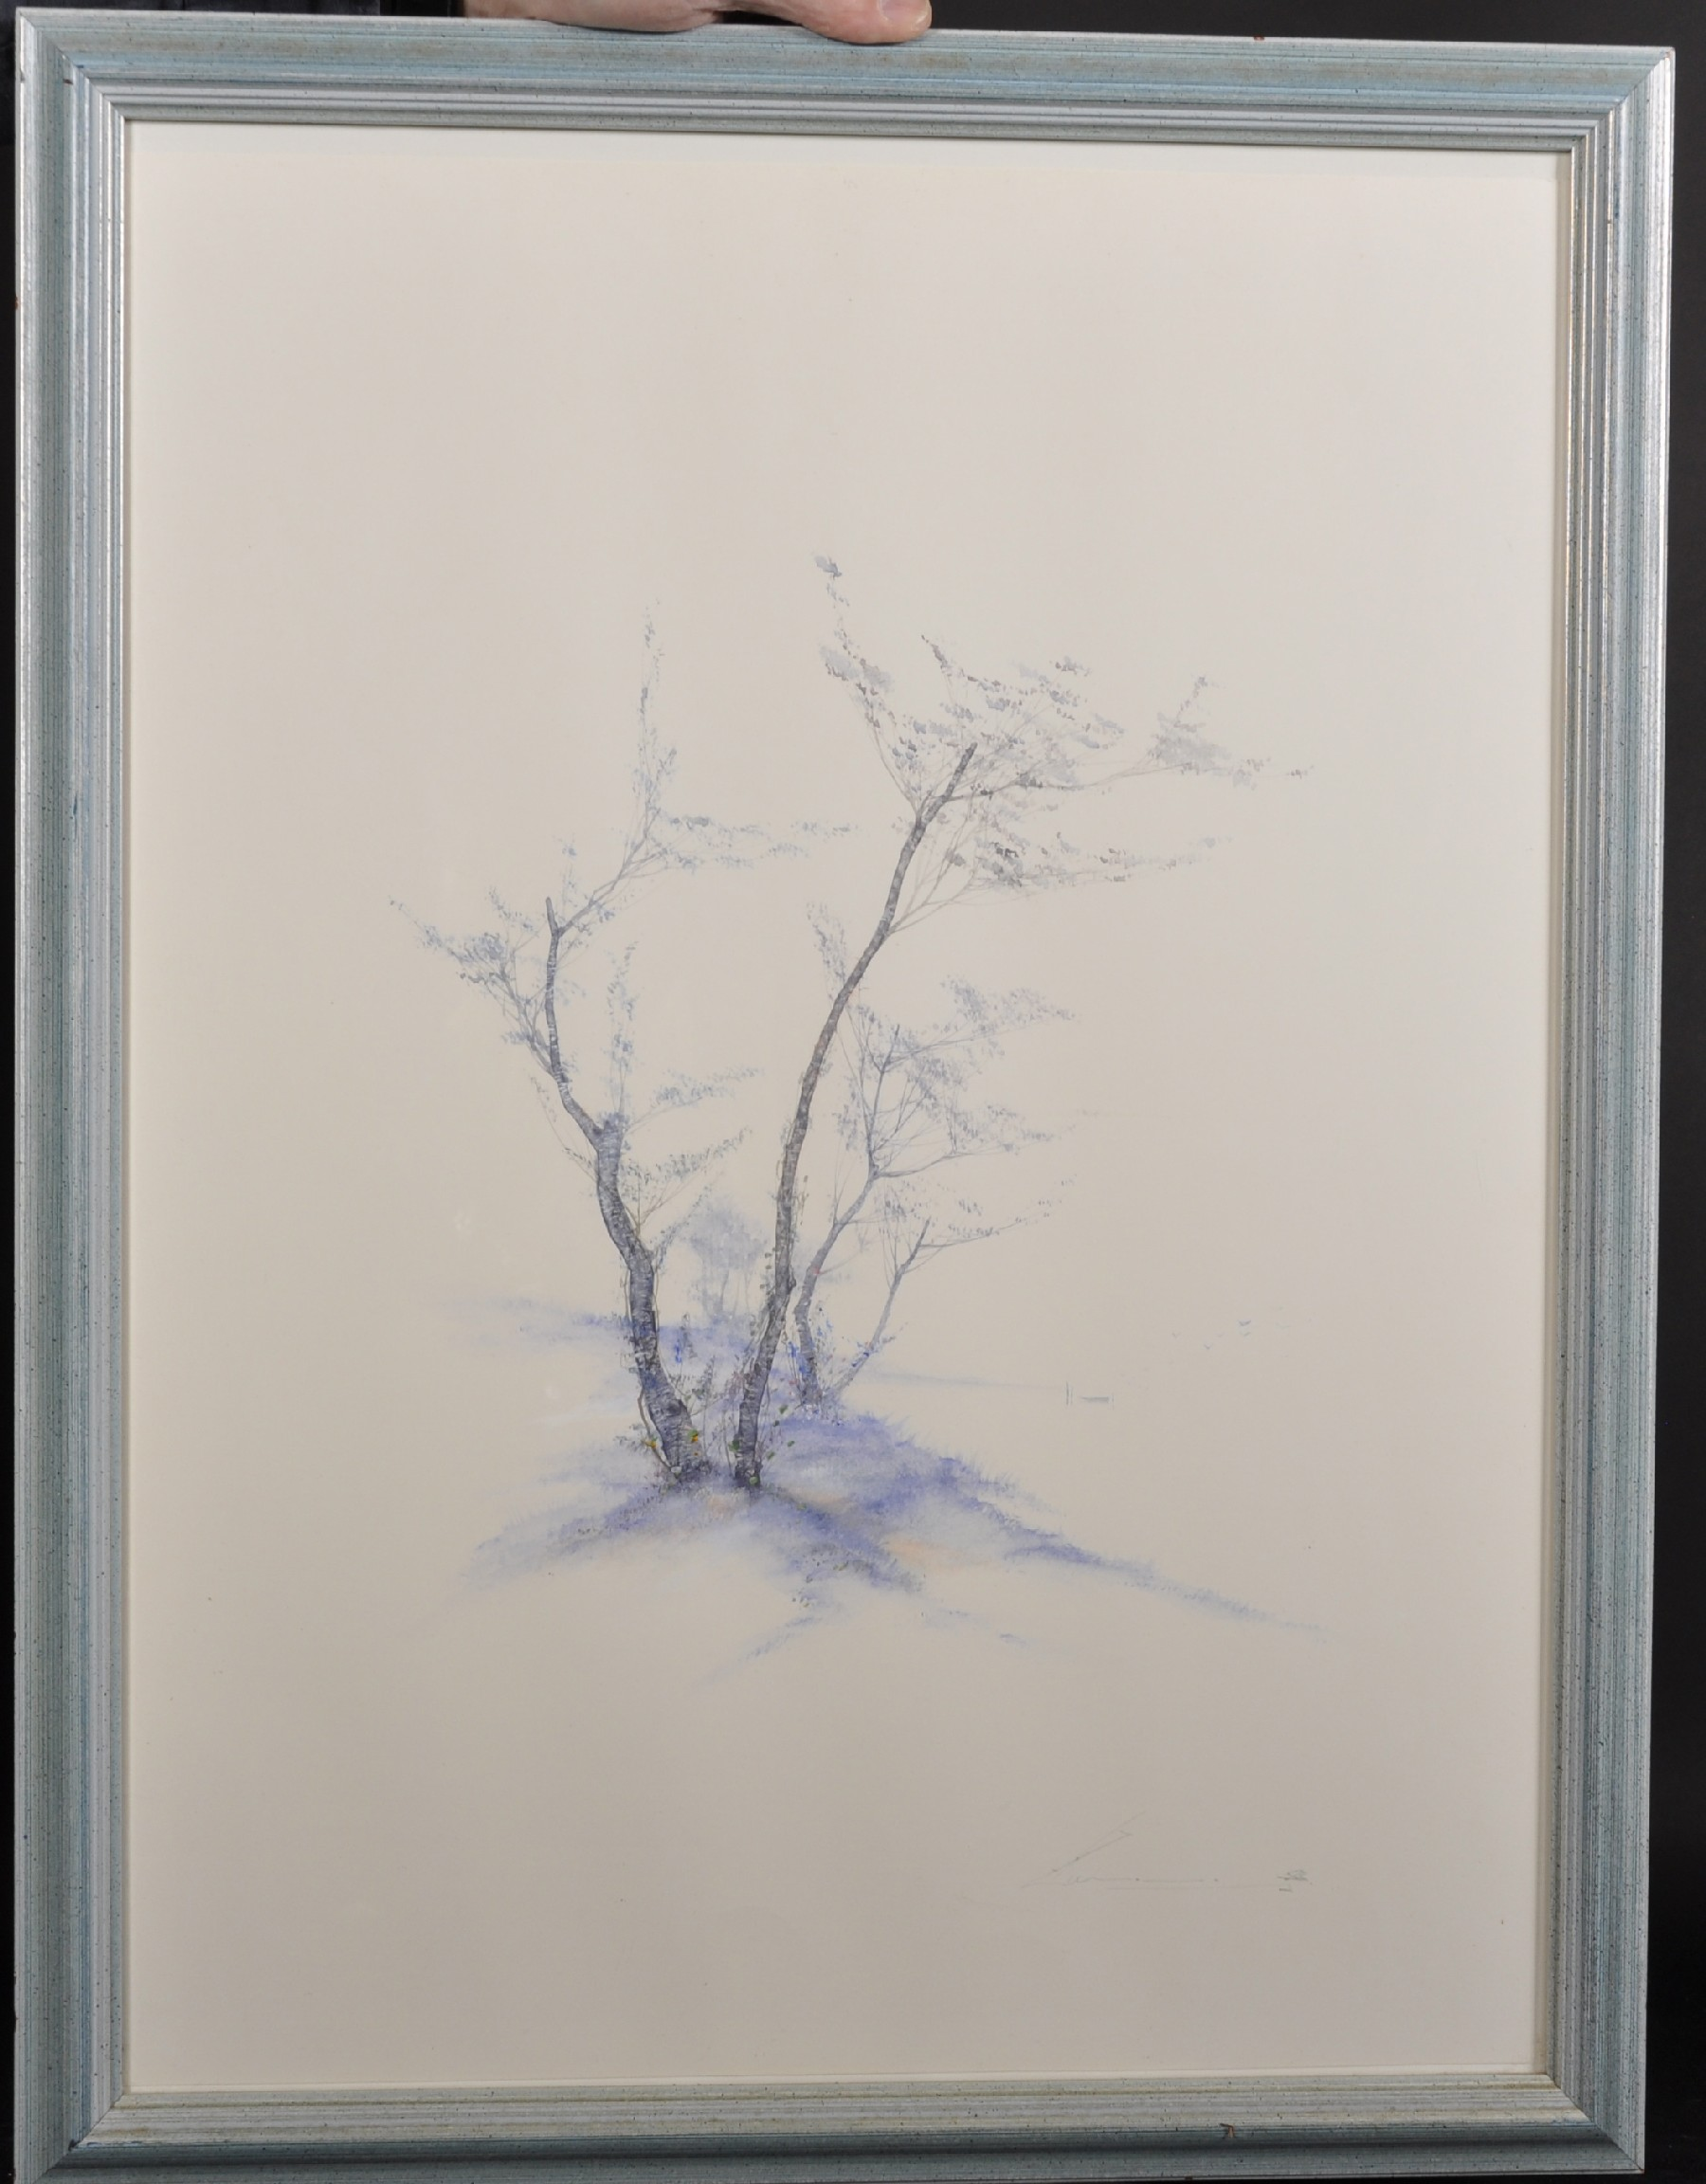 20th Century English School. An Aesthetic Landscape with a Tree, Watercolour, Indistinctly Signed in - Image 2 of 6